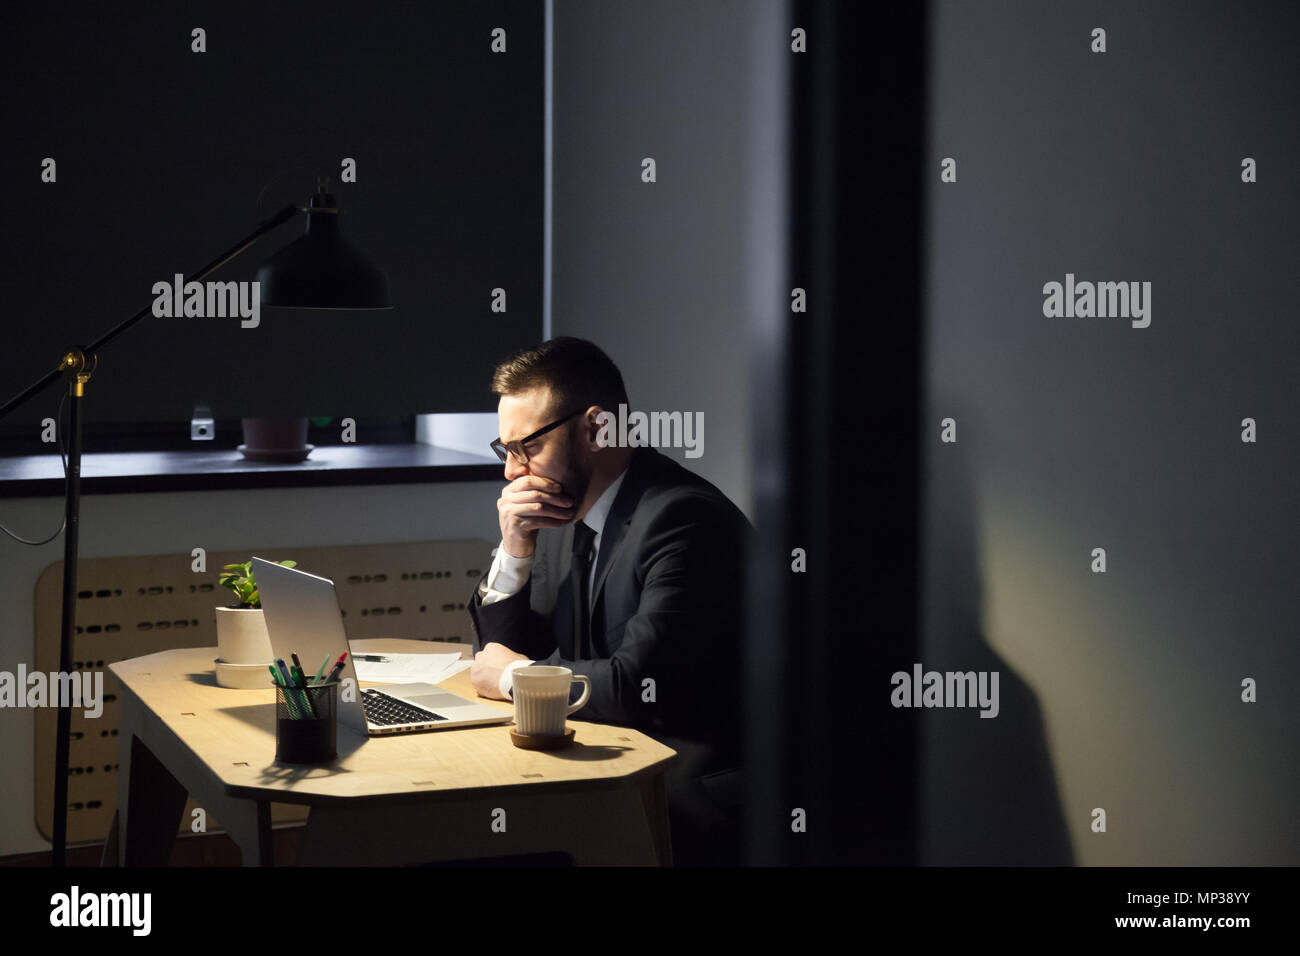 Tired male worker yawning spending late hours in office - Stock Image